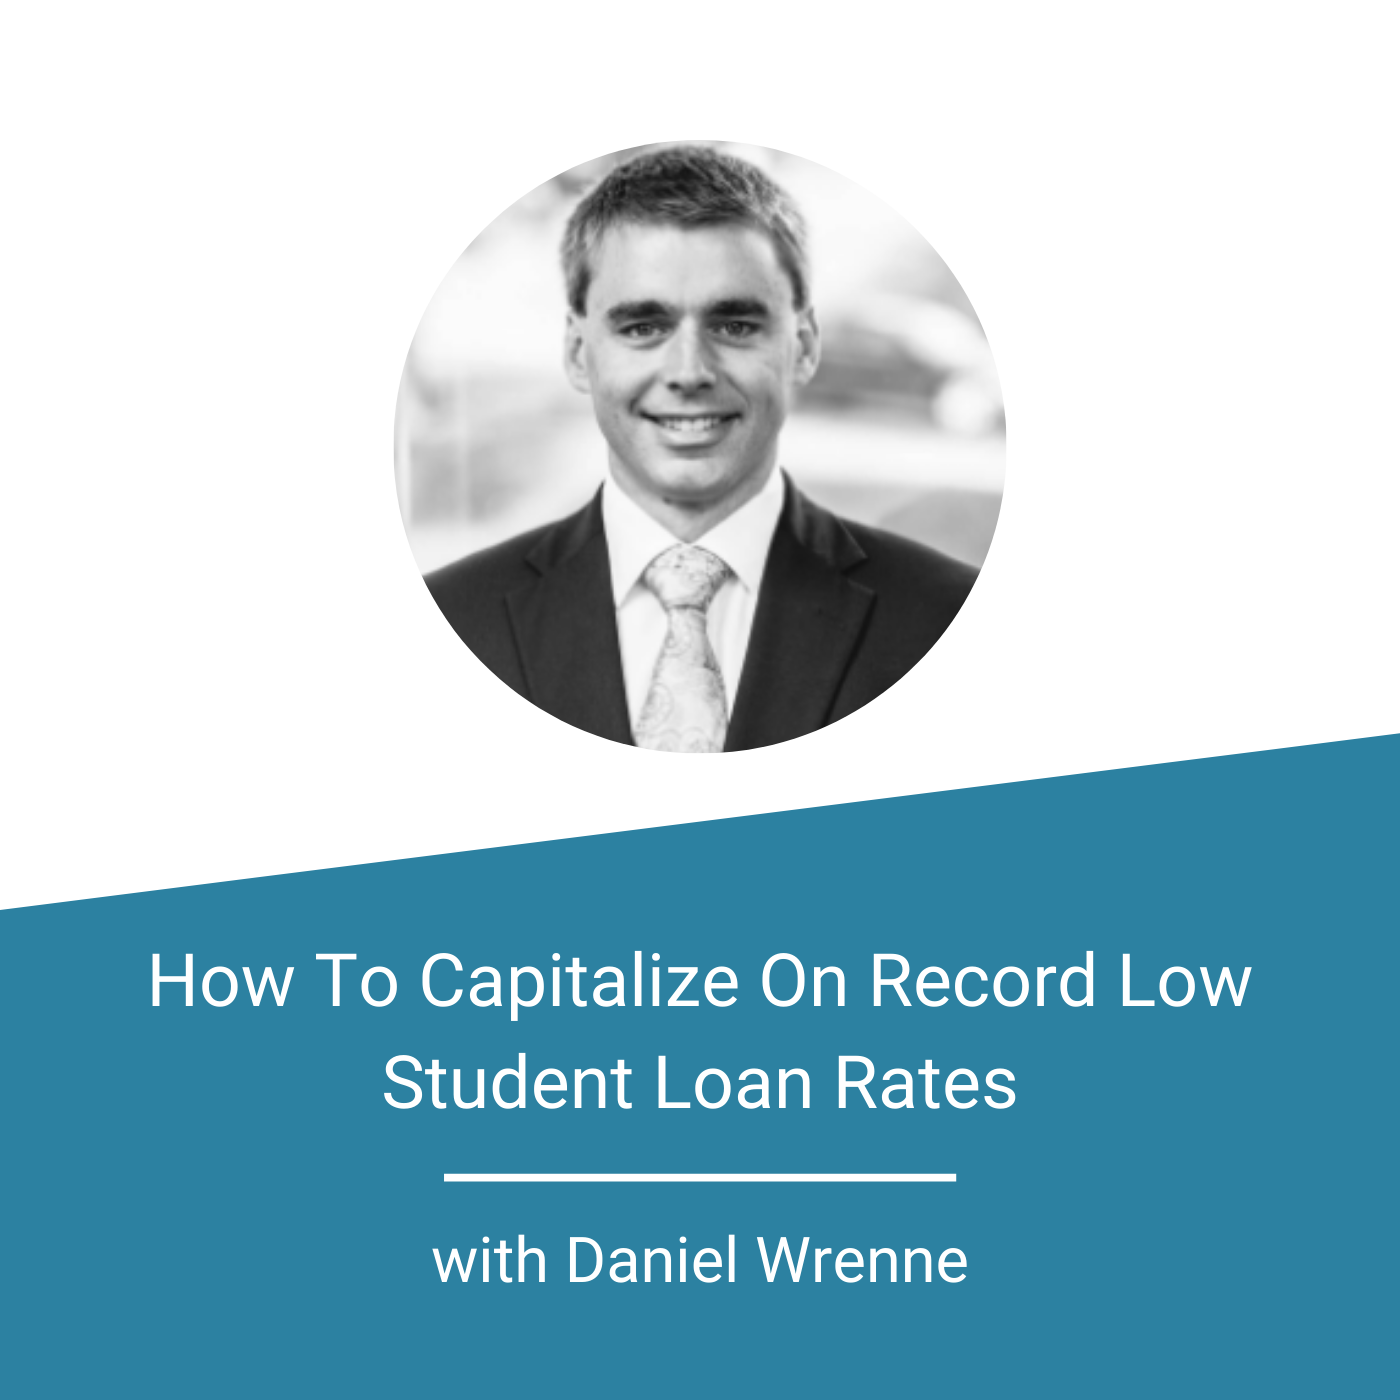 Featured Image - How To Capitalize On Record Low Student Loan Rates